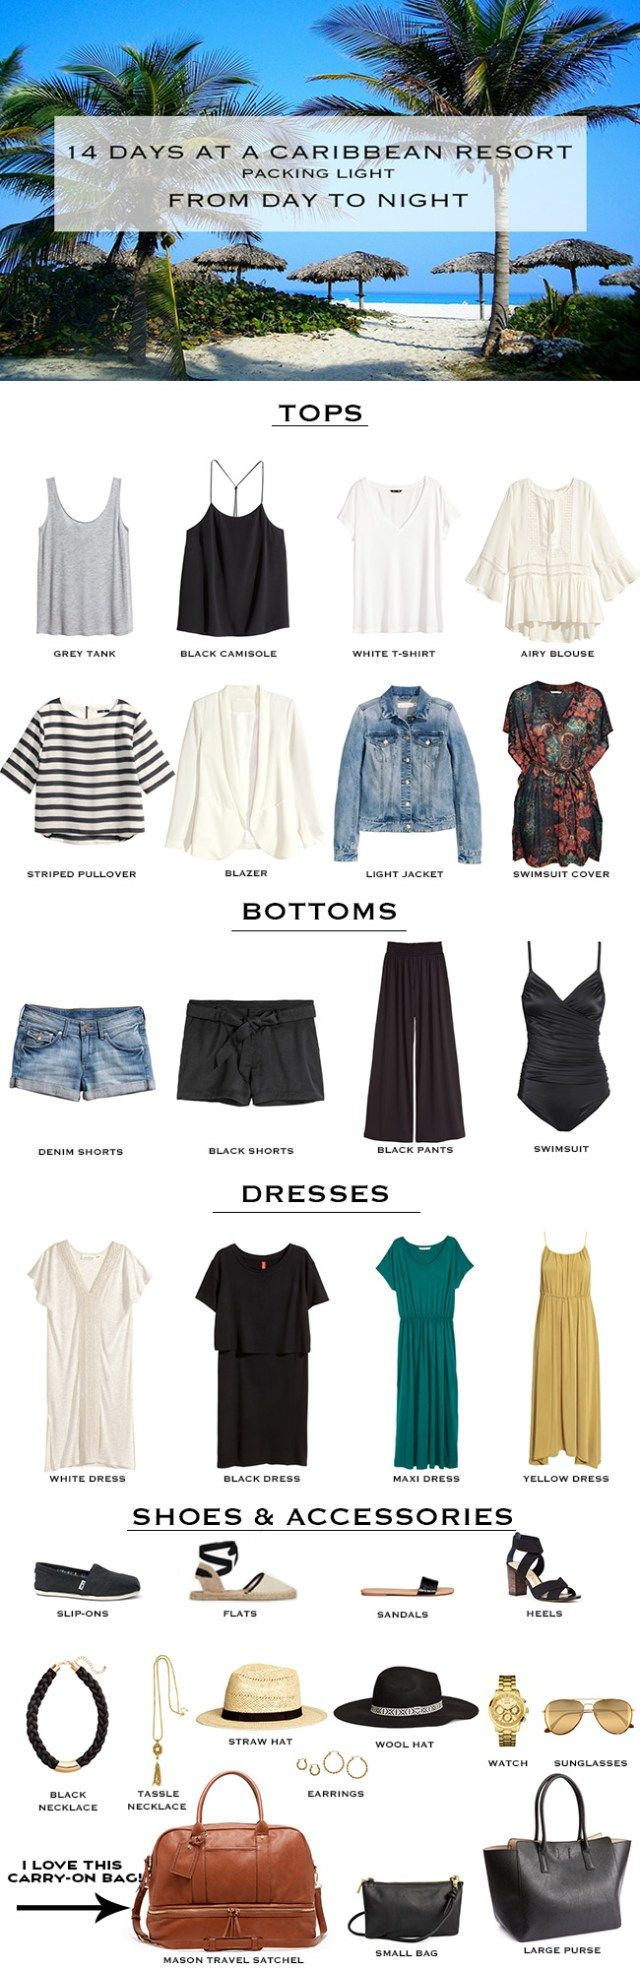 !4 Day Caribbean Resort Packing List + day and night outfit options here: http://livelovesara.com/2015/07/14-day-caribbean-resort-packing-list-part-2/